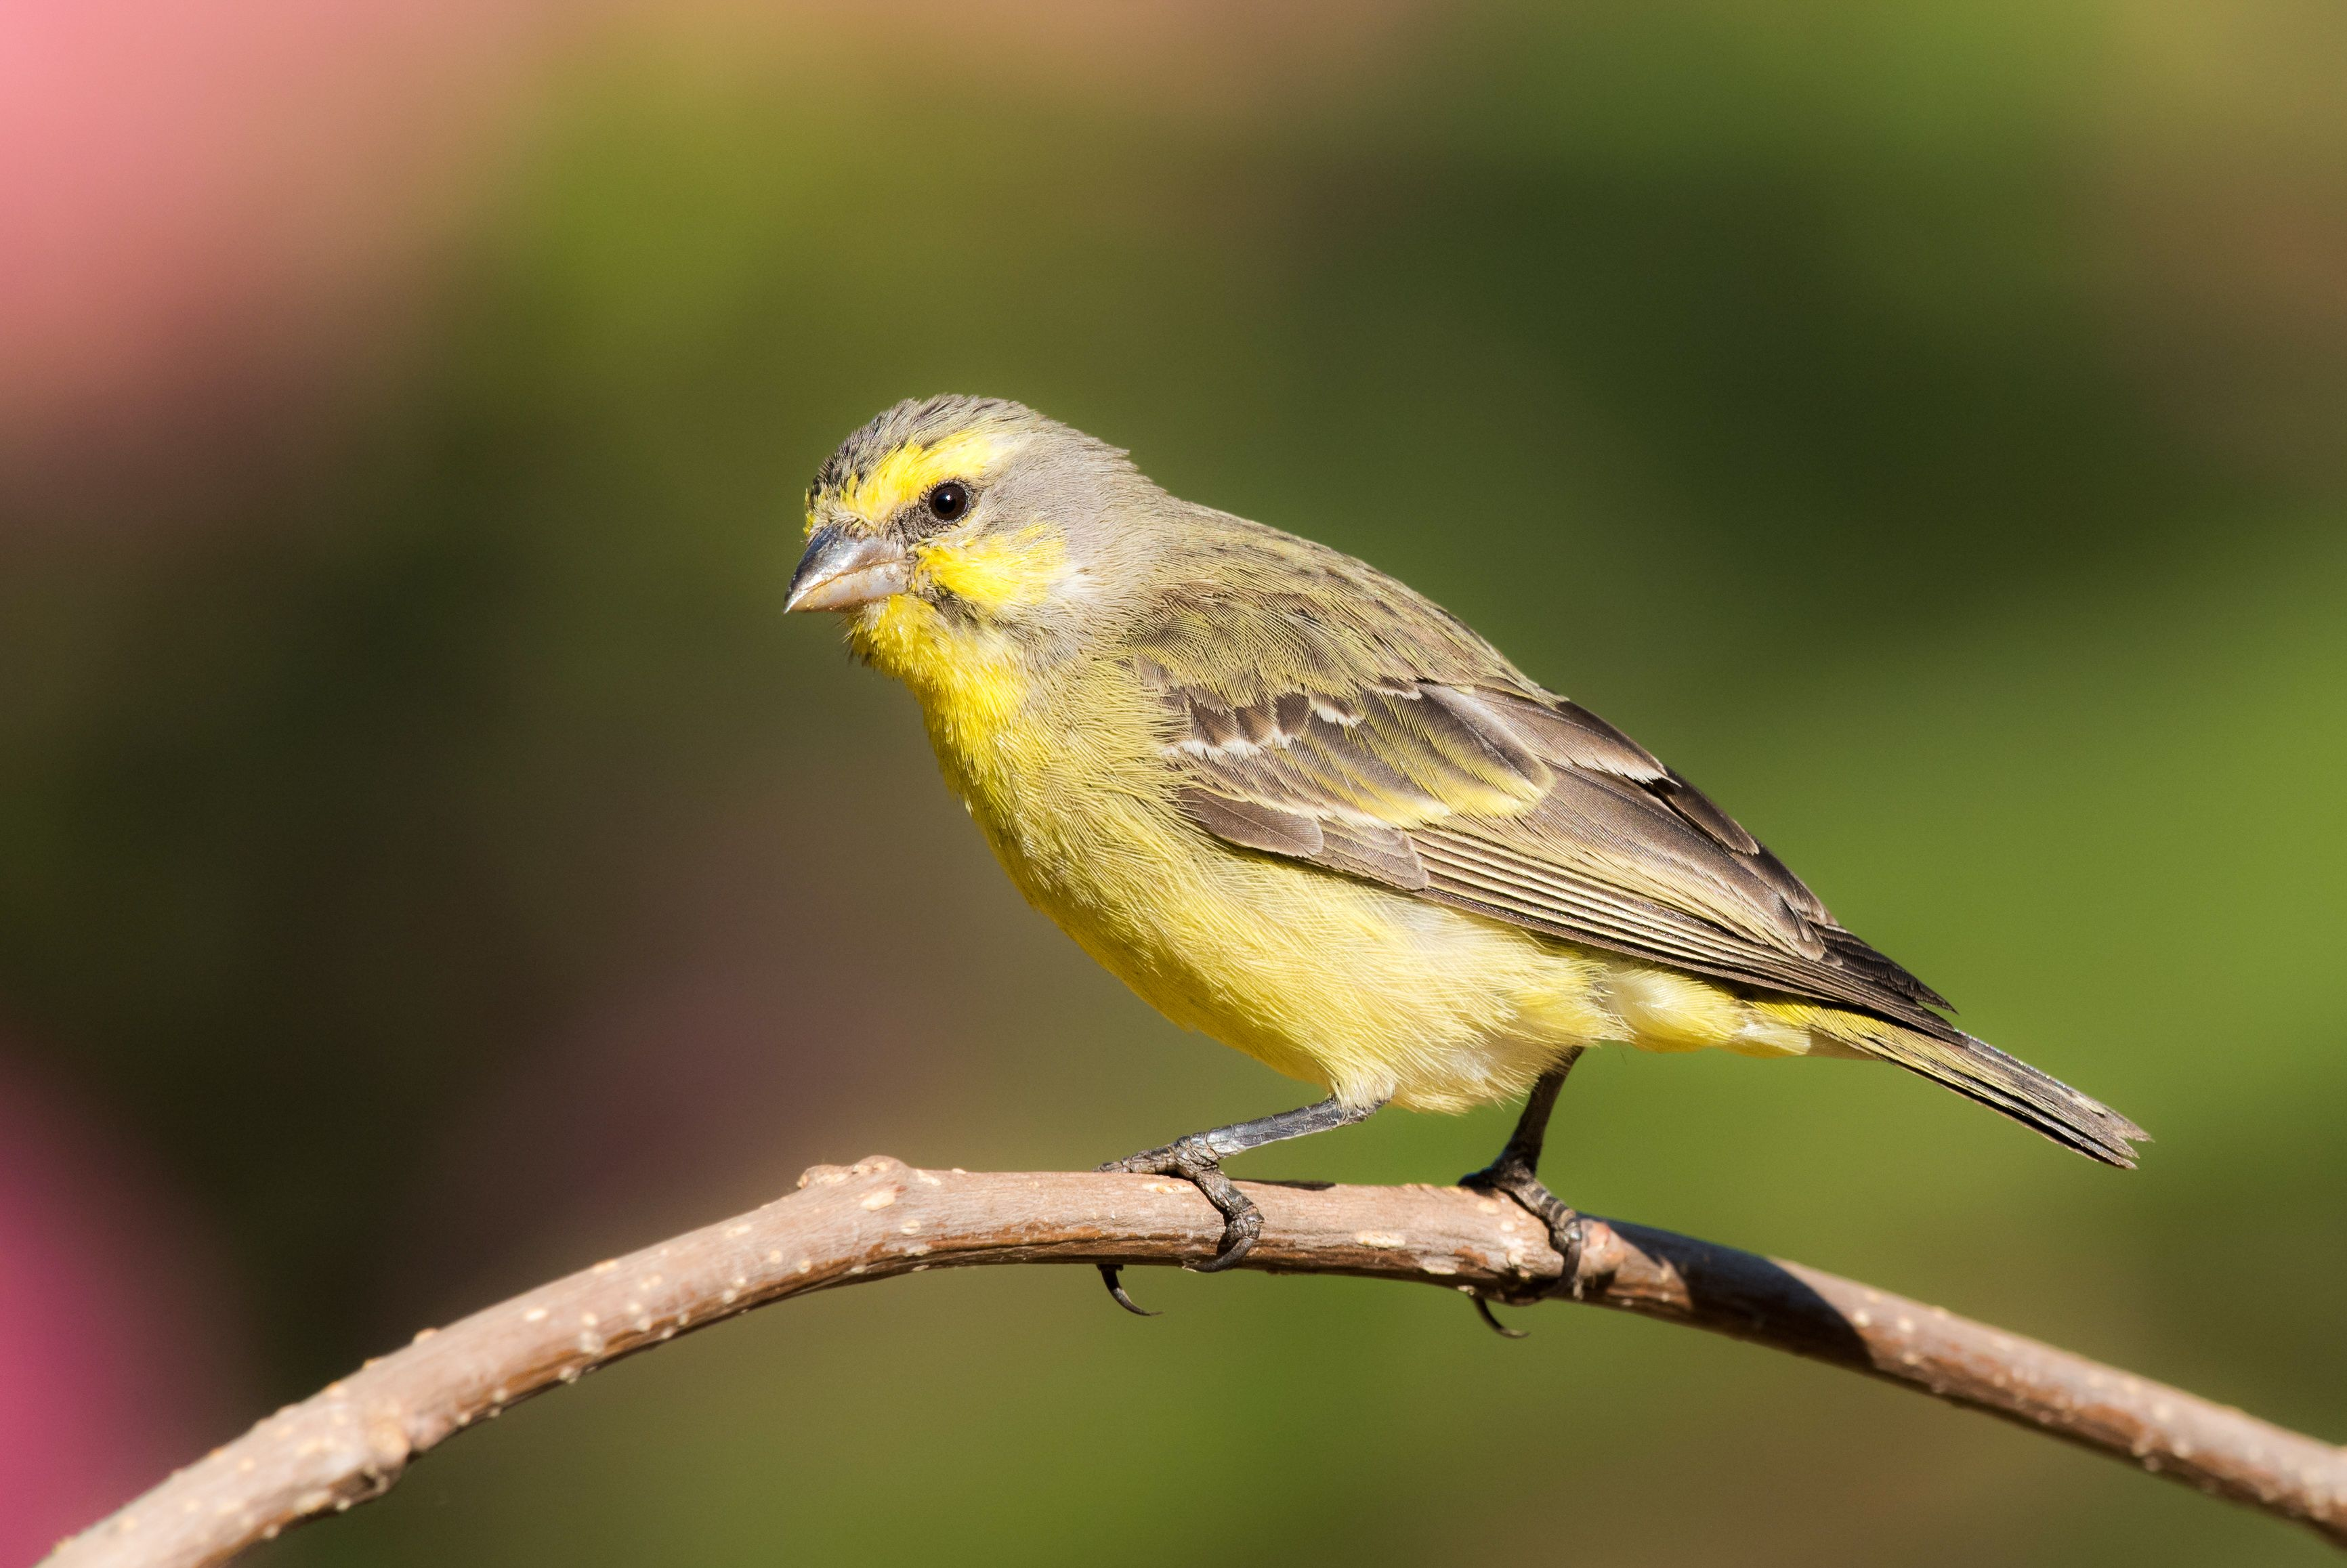 Green Singer Yellow Fronted Canary Available Now At Thefinchfarm Com Bird Island Pet Rodents Birds Online